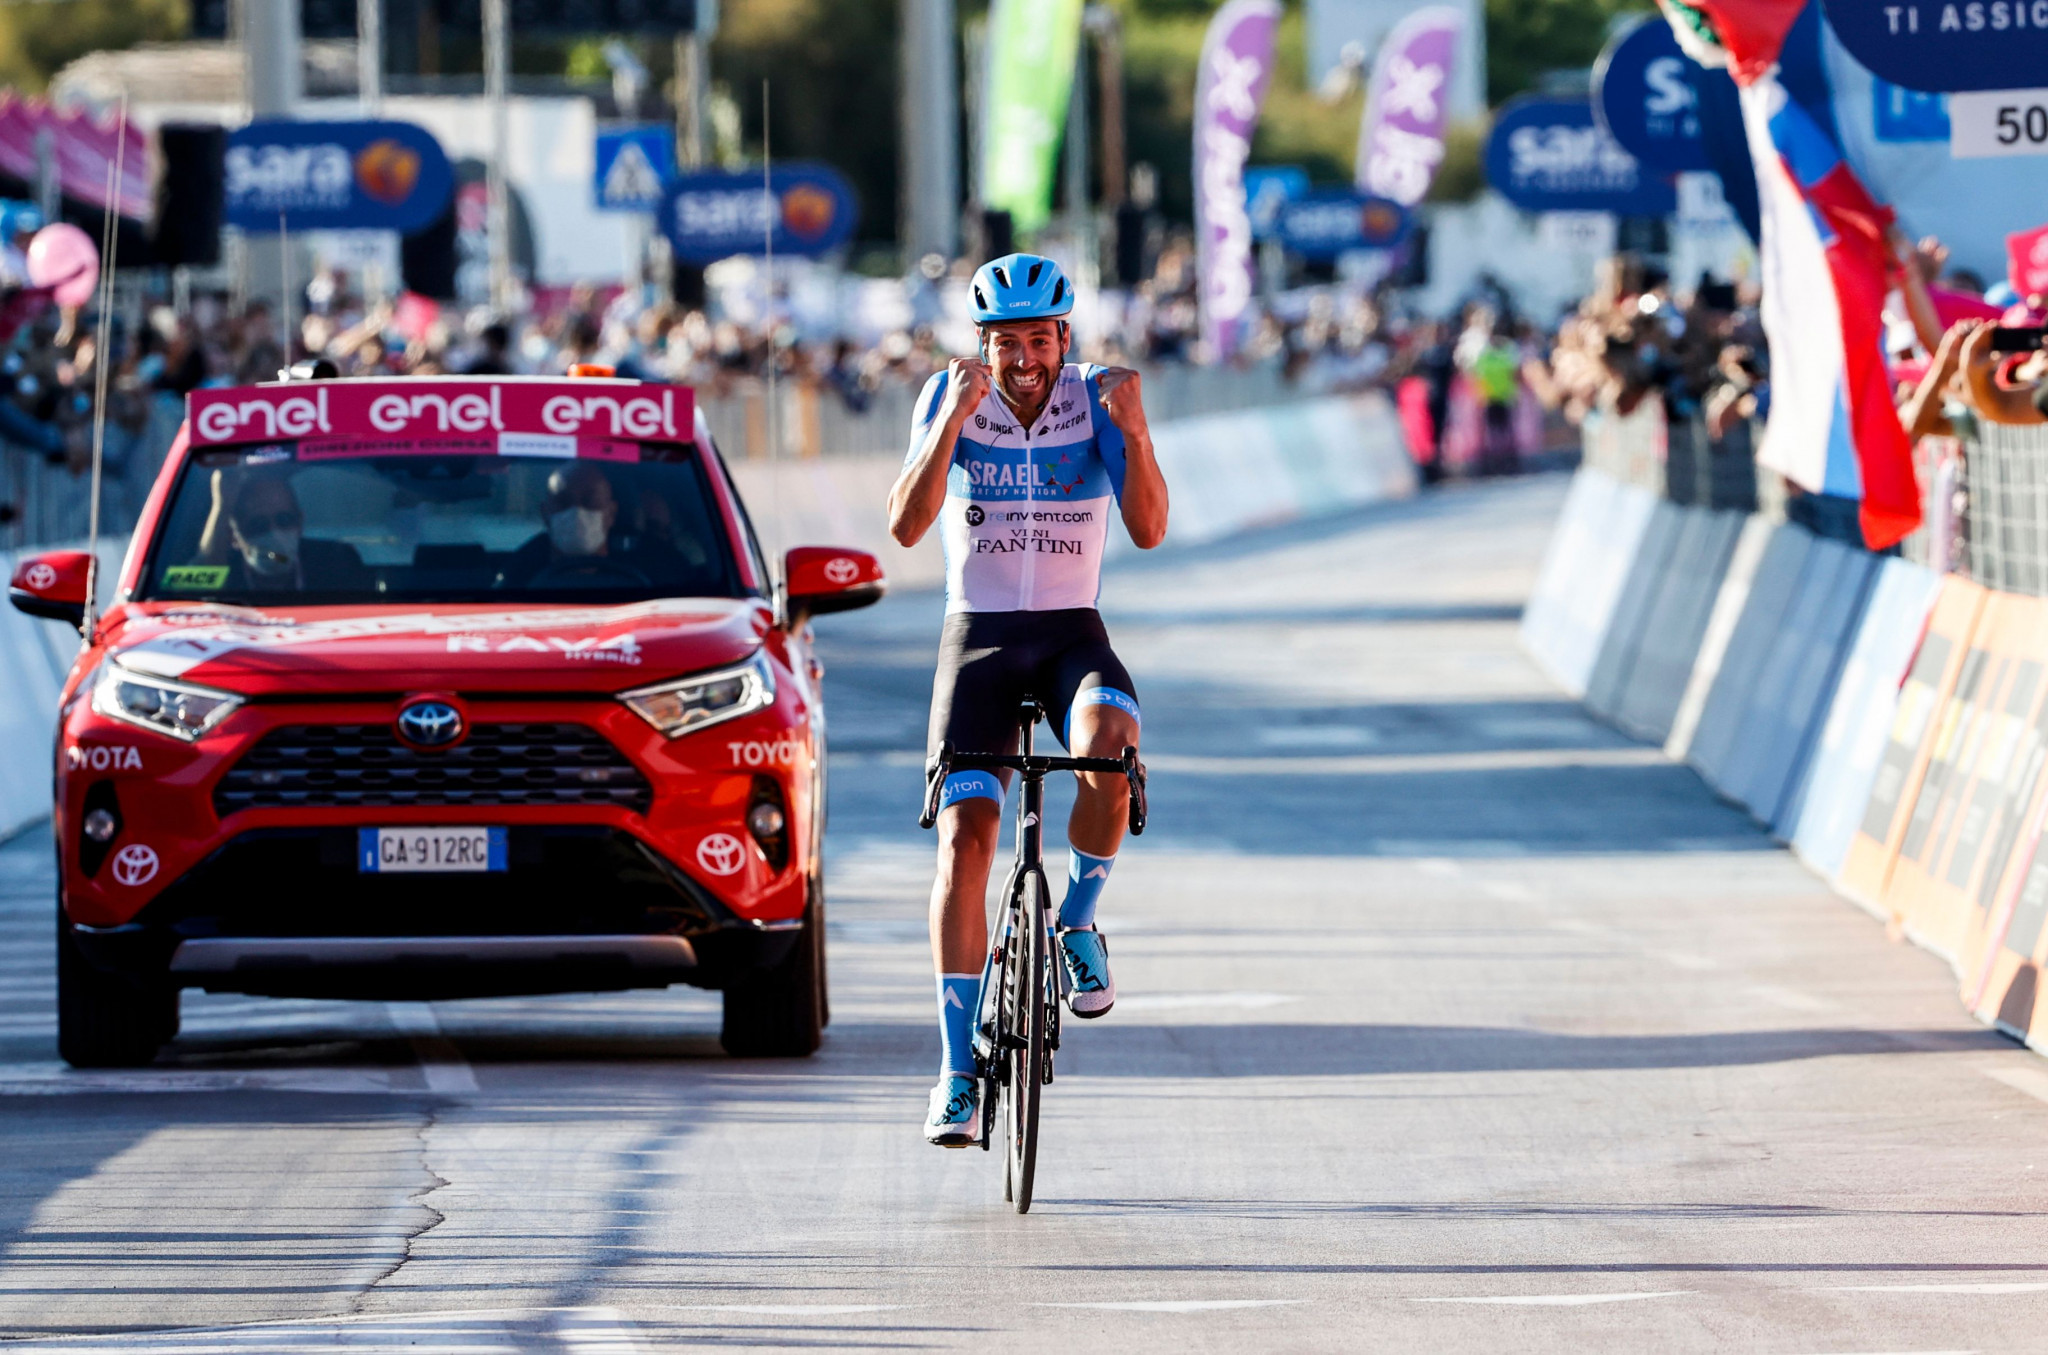 Dowsett delivers Giro d'Italia stage win for Israel Start-Up Nation after Yates leaves race with coronavirus